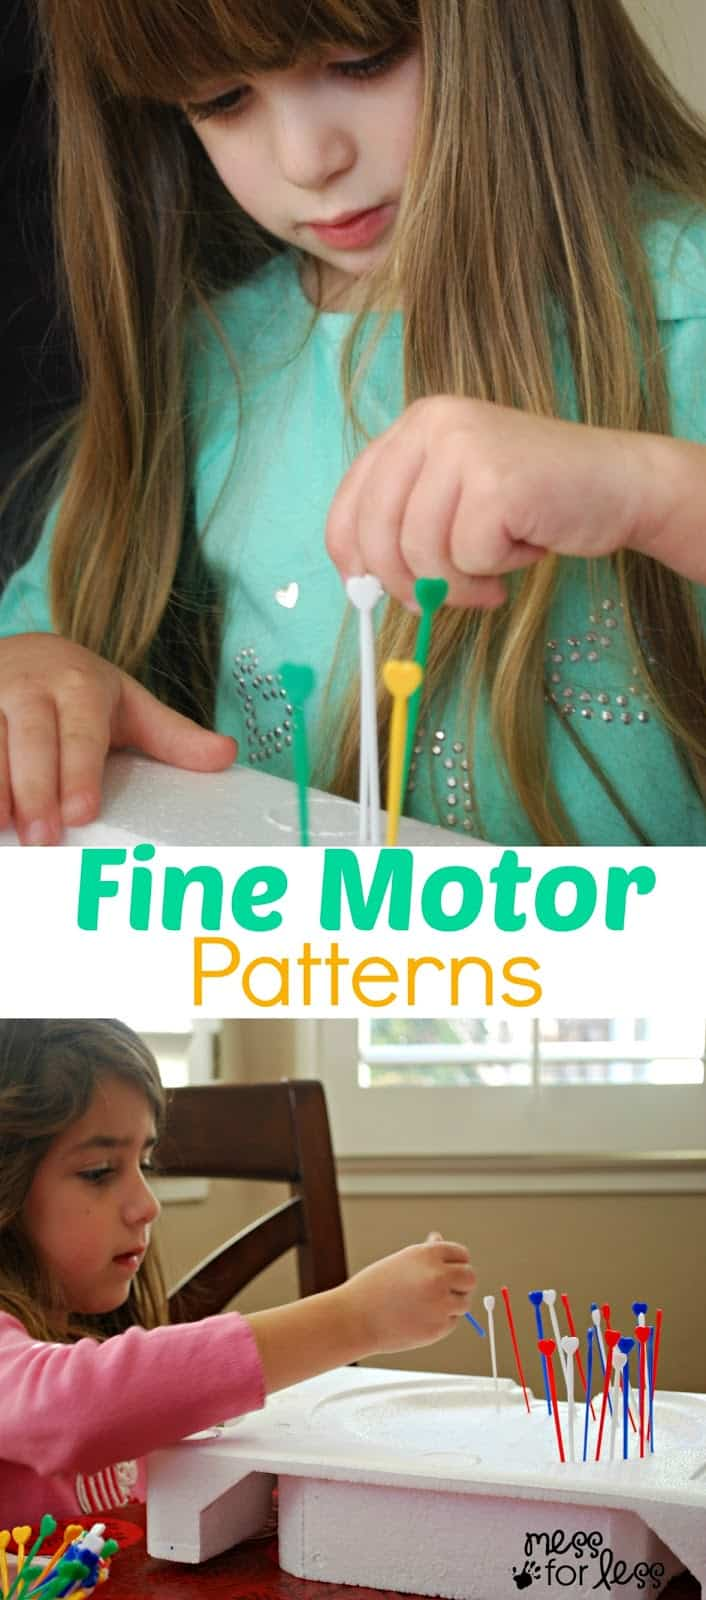 Fine Motor Patterns - making patterns in foam using colored picks.